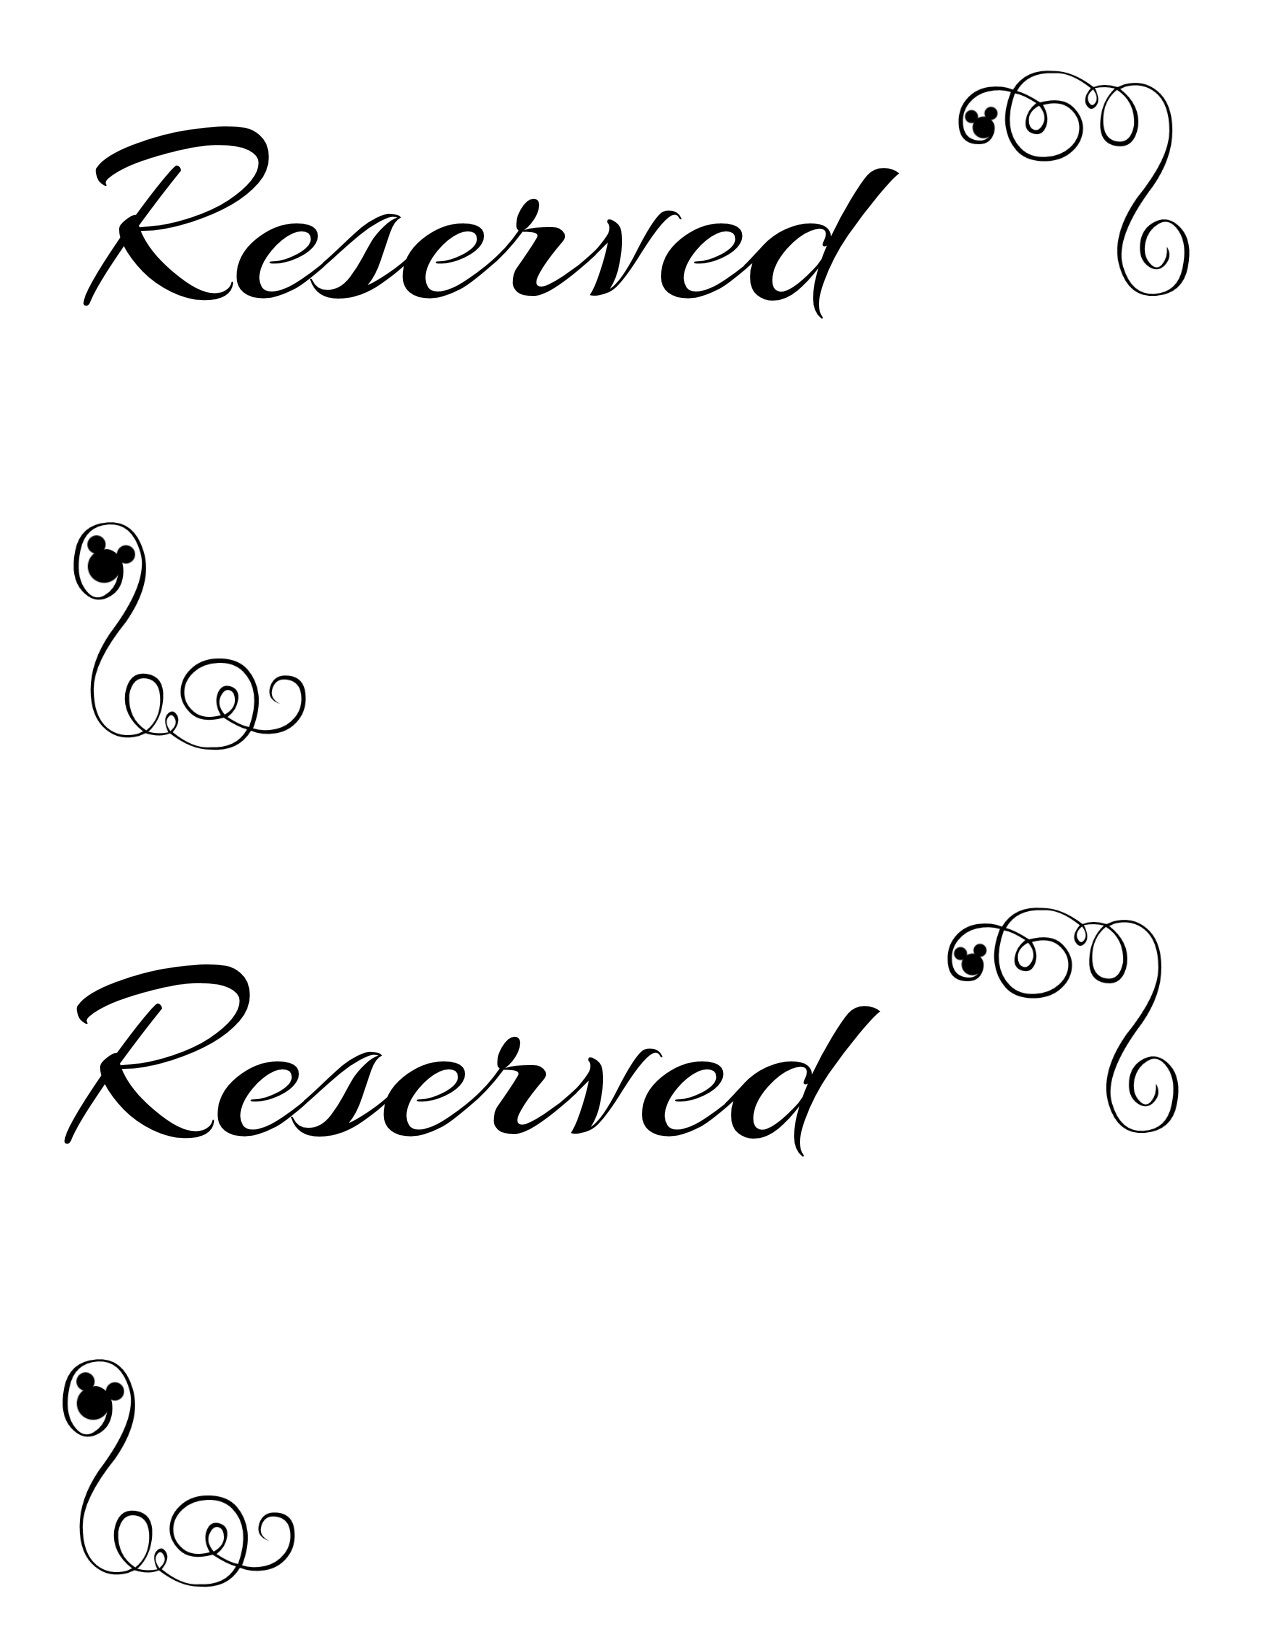 Free Printable Reserved Seating Signs For Your Wedding Ceremony - Free Printable Out Of Service Sign